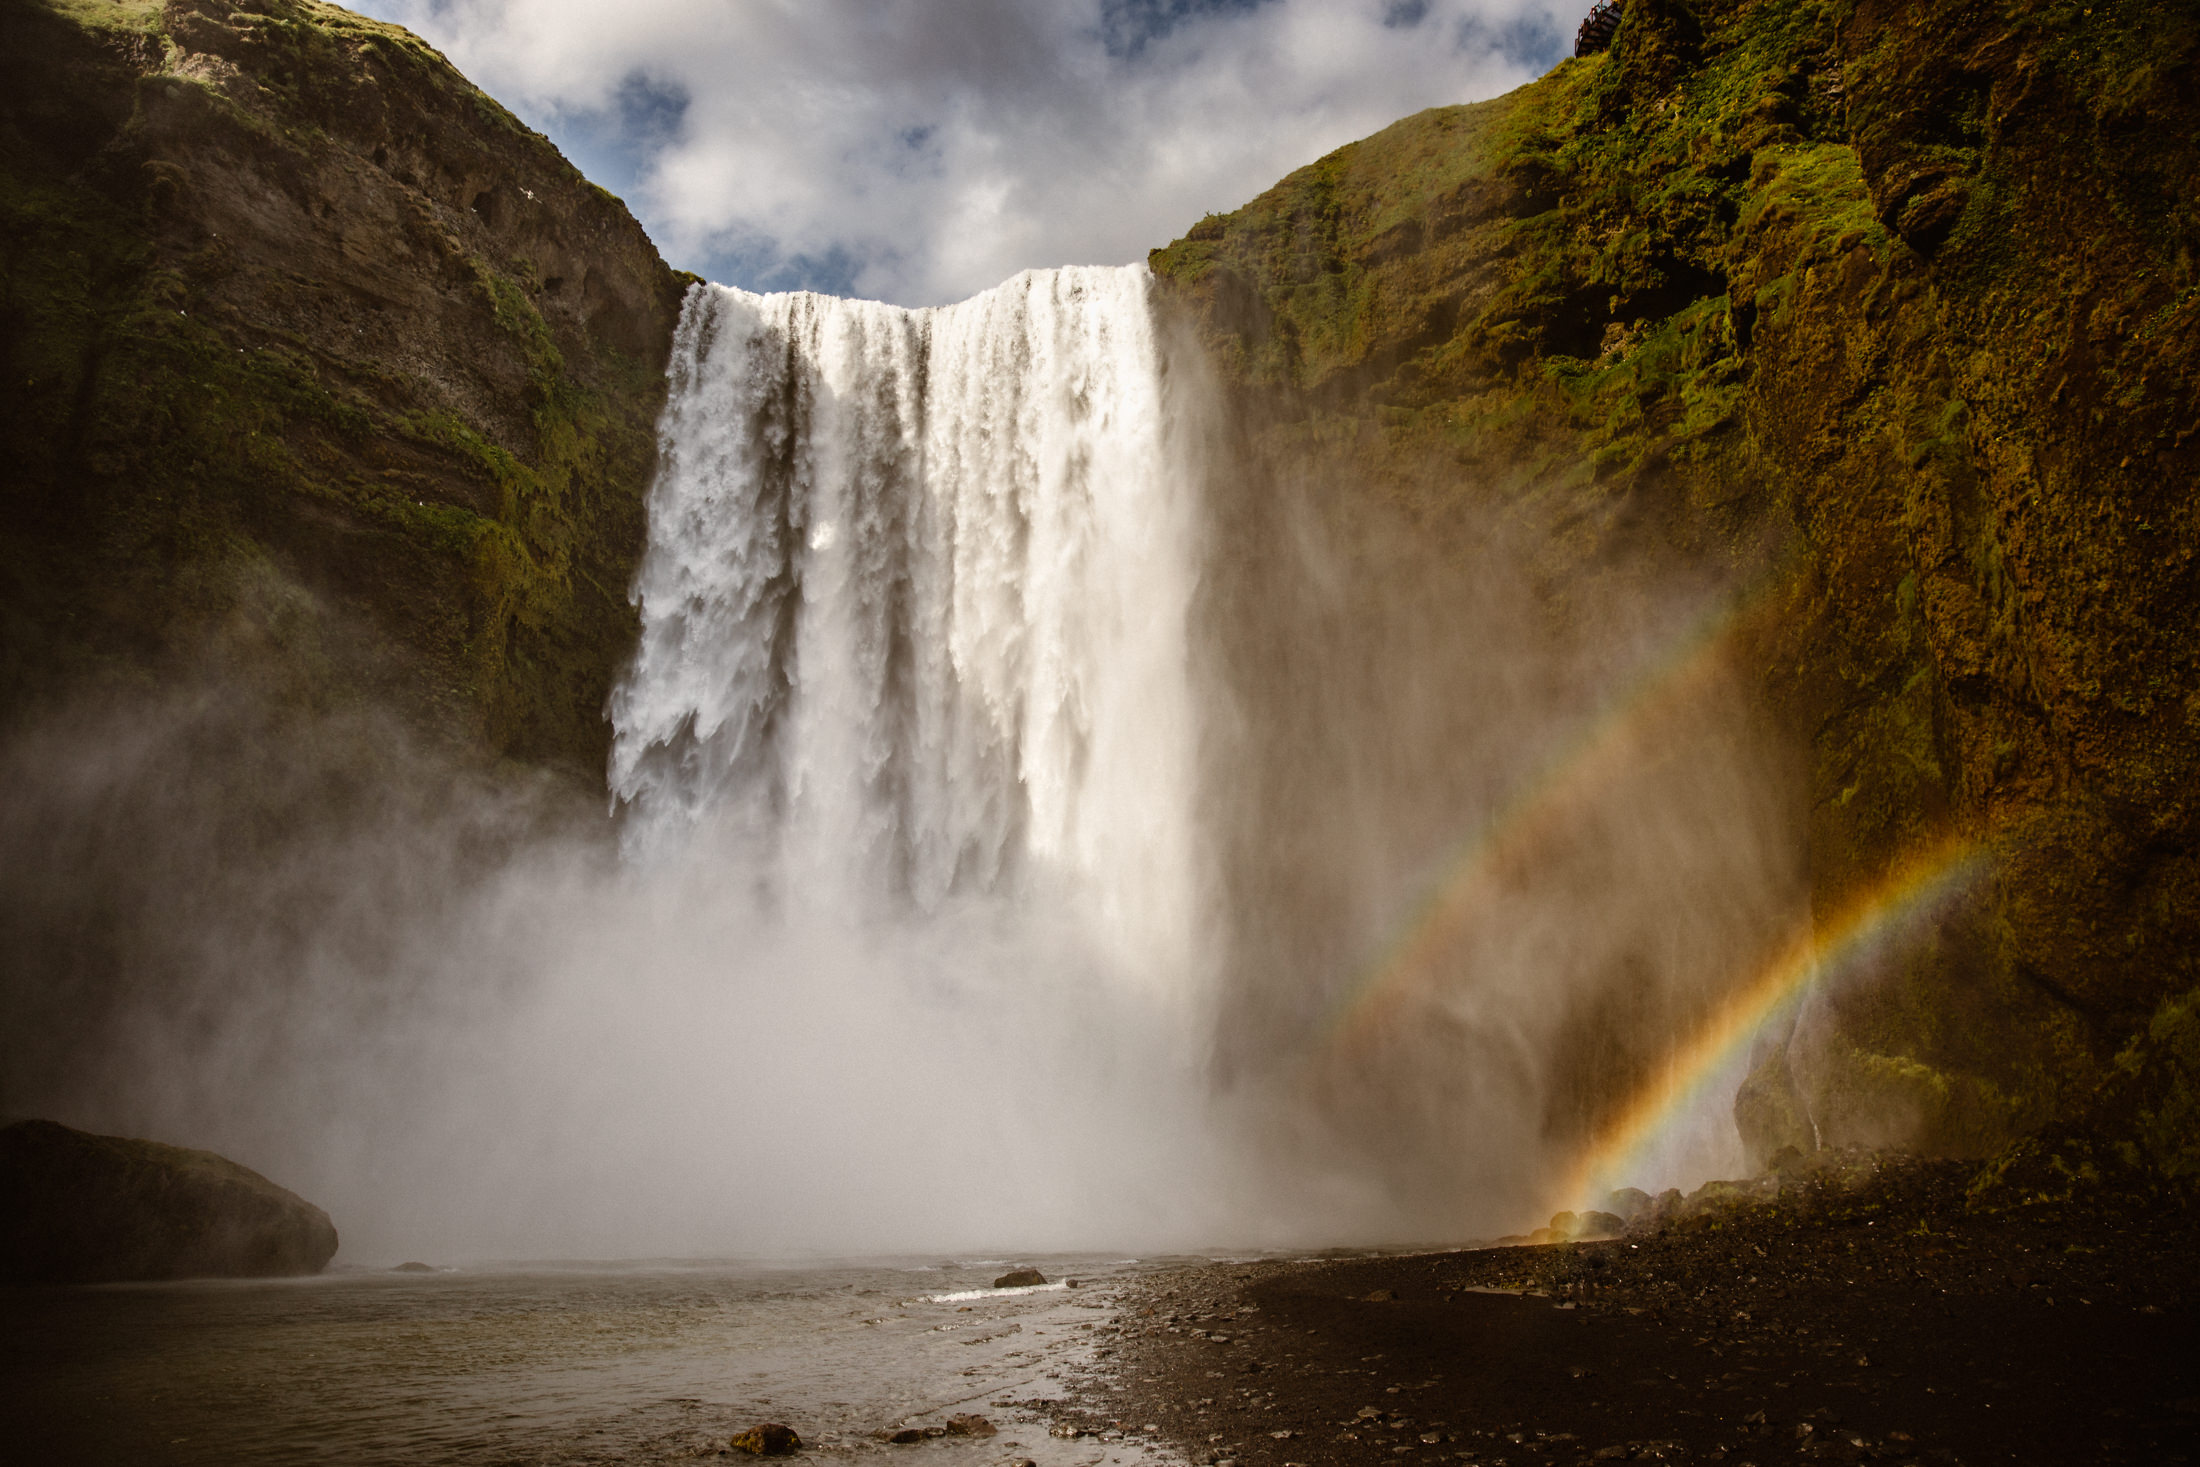 An epic waterfall in Southern Iceland with a double rainbow. A perfect place for your adventurous elopement wedding.